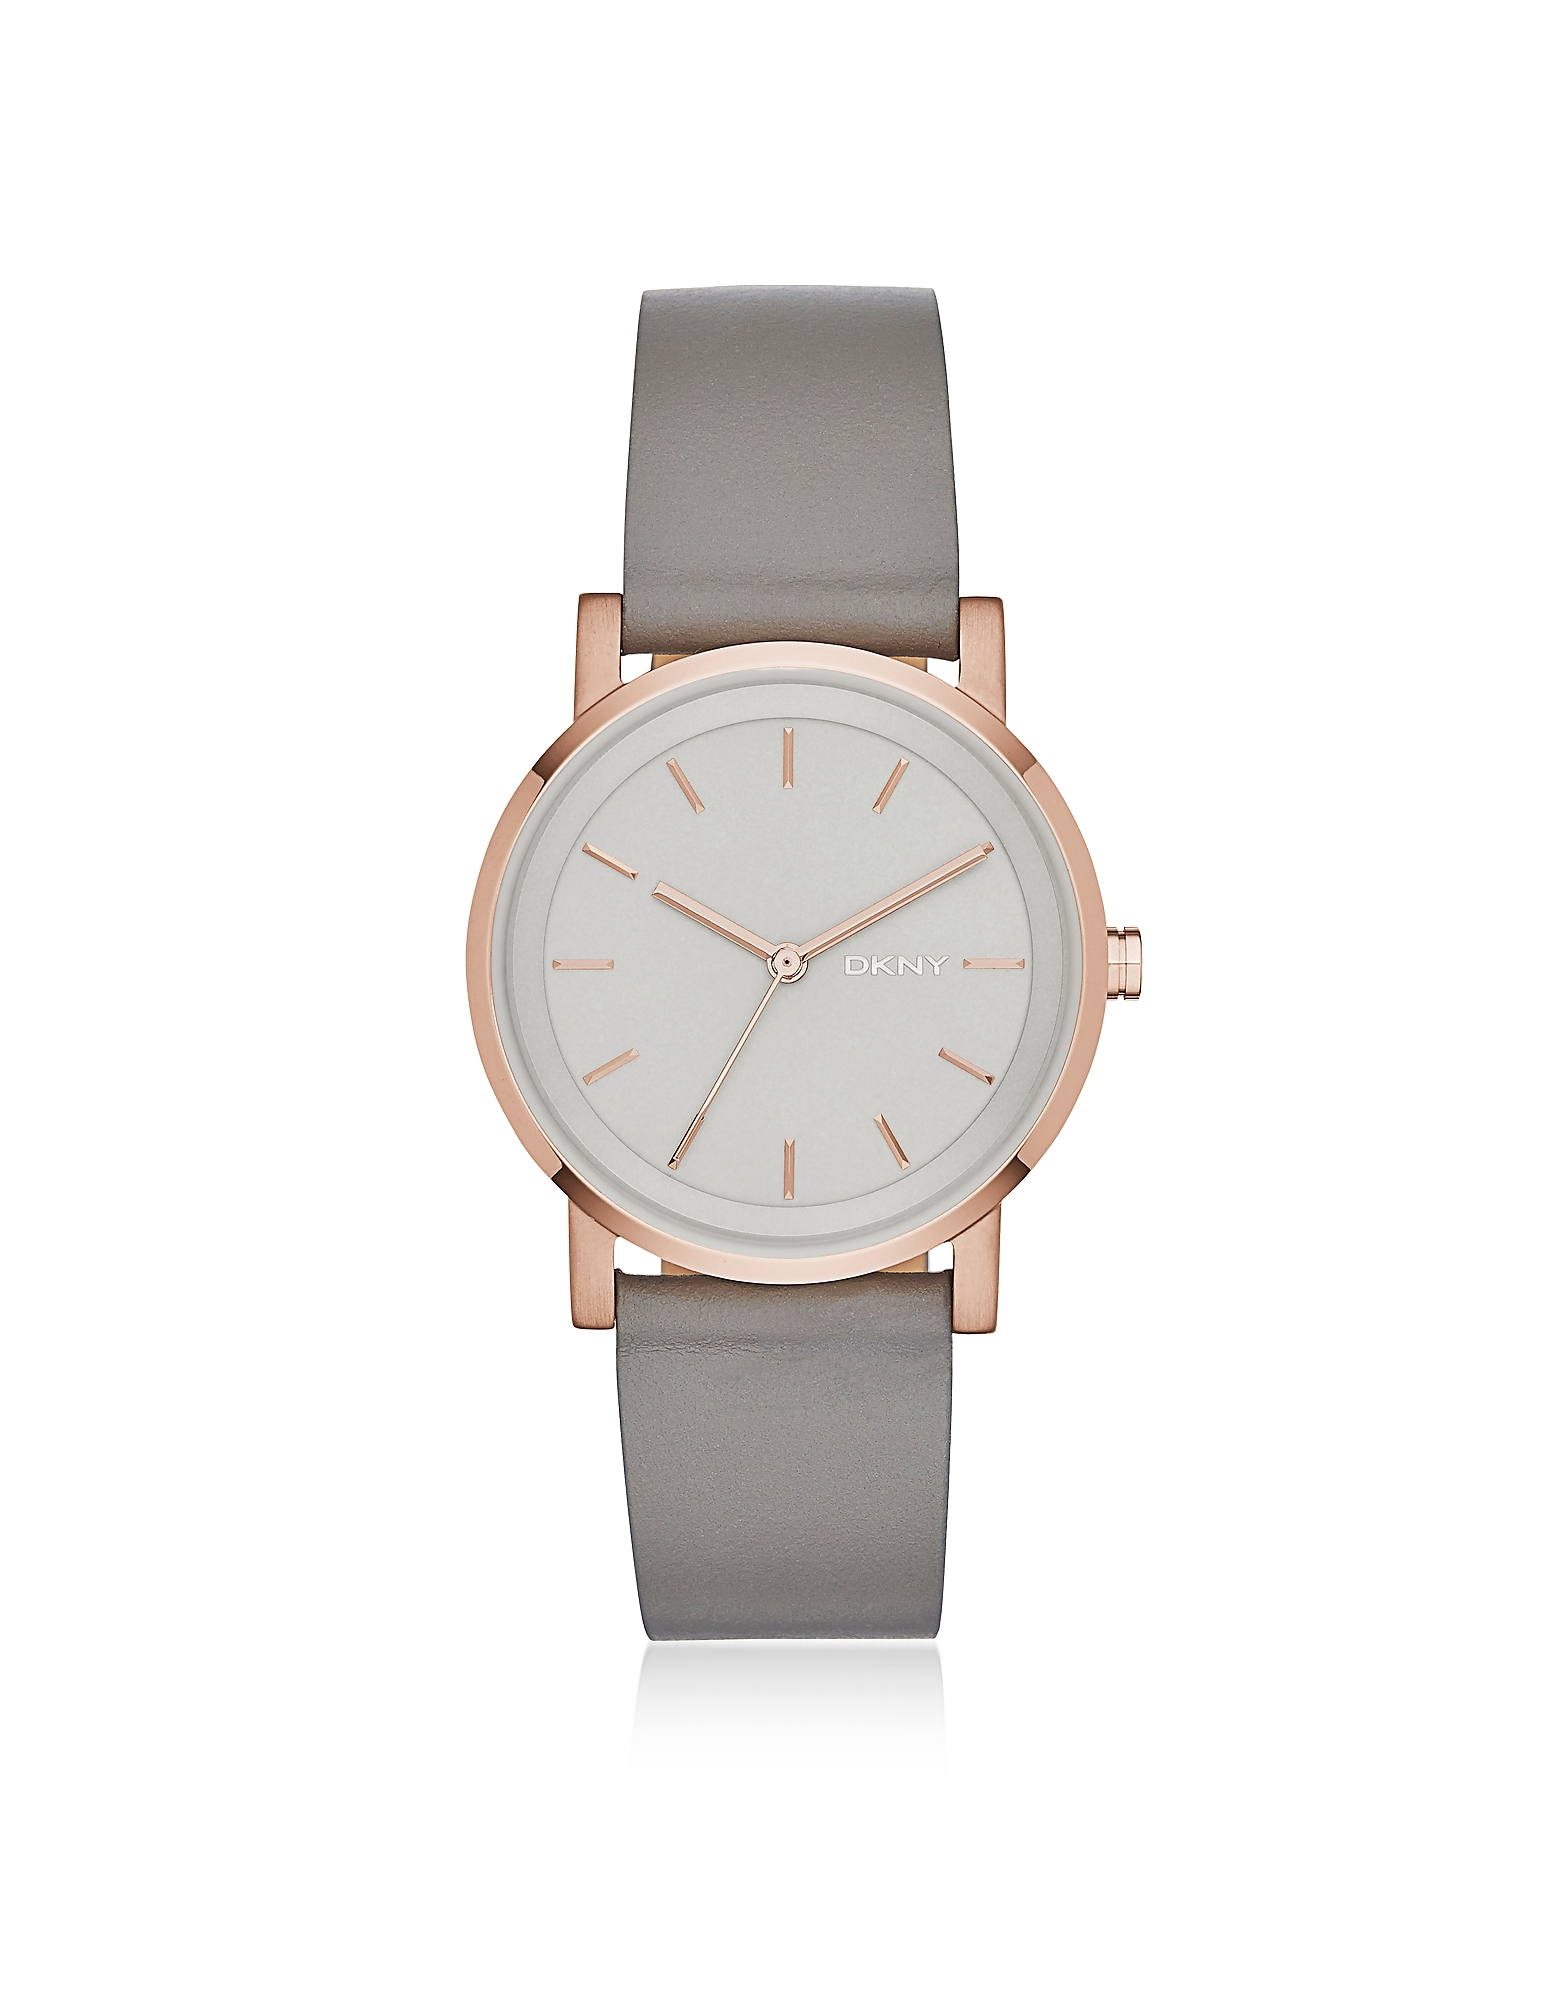 Soho Women's Watch